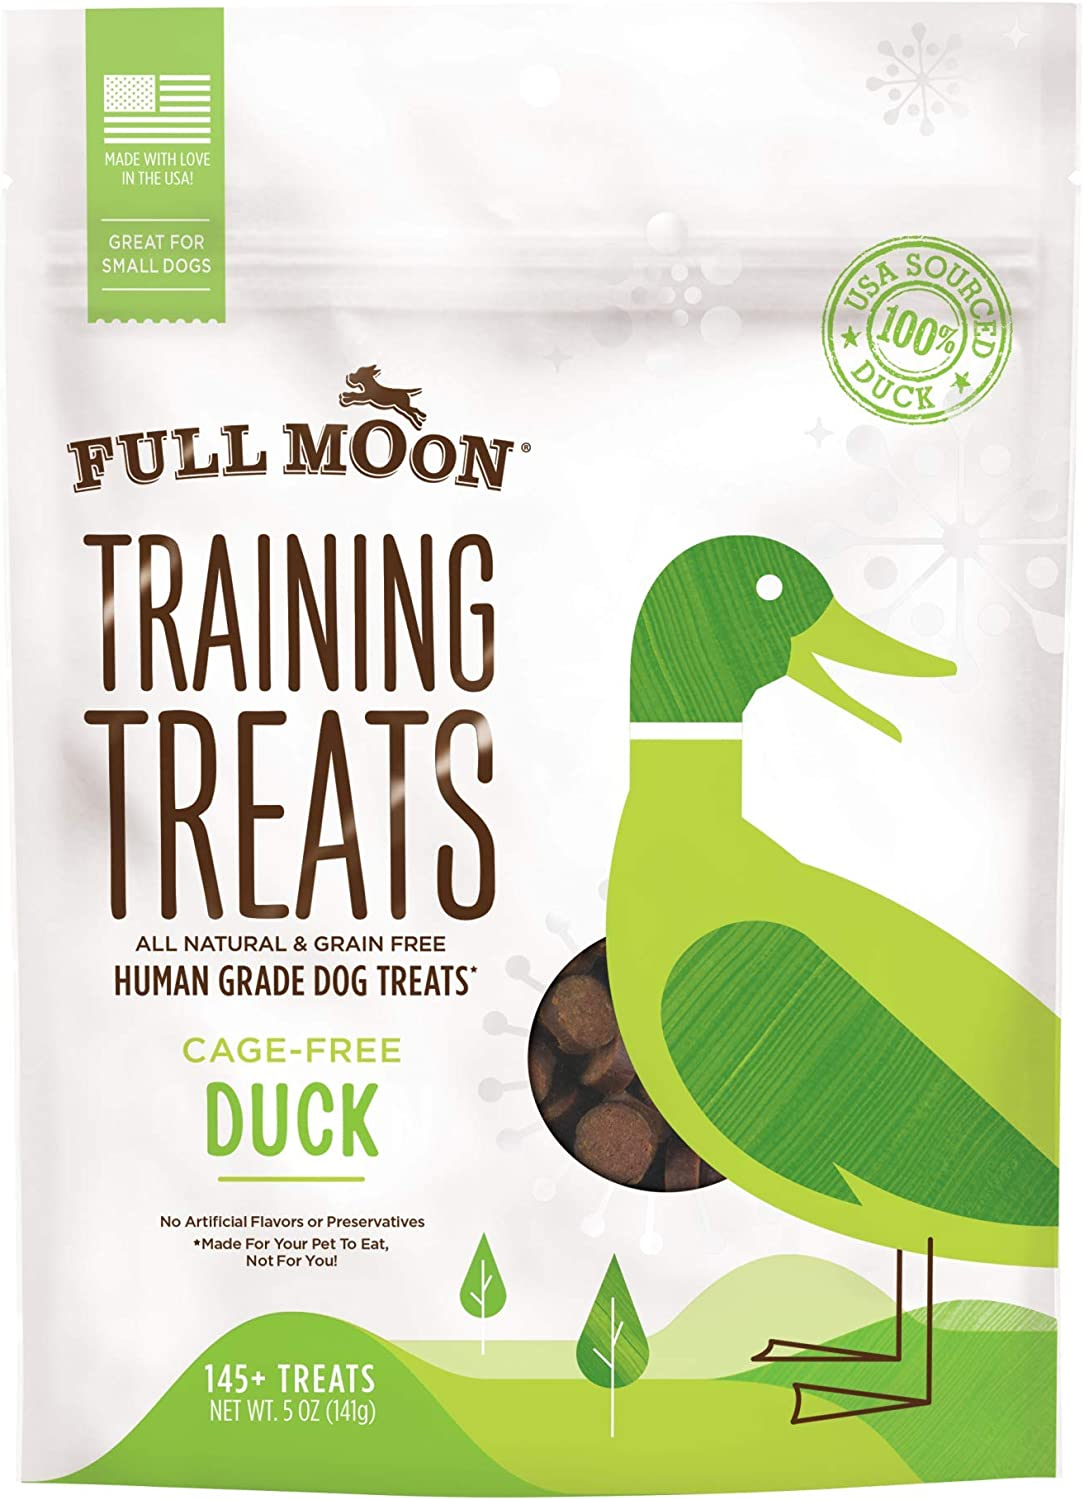 Full Moon Organic Human Grade Training Treats for Dogs